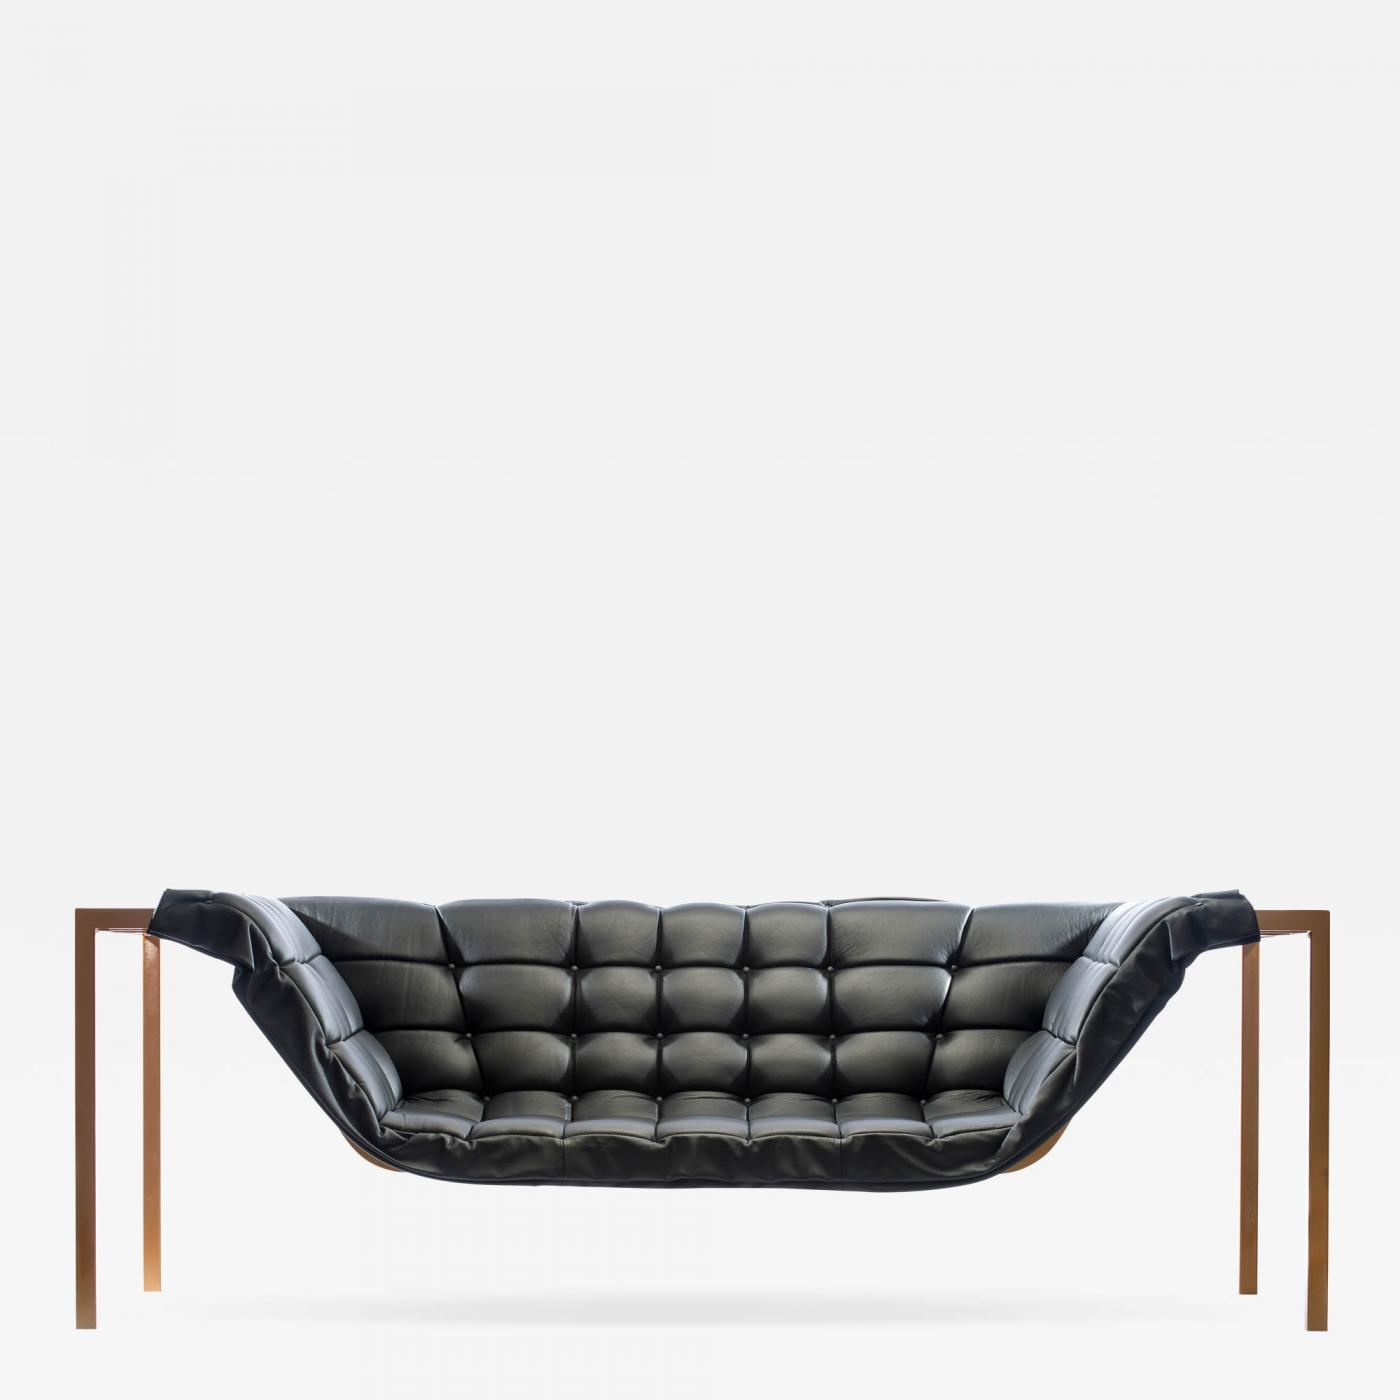 Harow - Orbital 2 Seater Sofa (Empire Edition), 2017